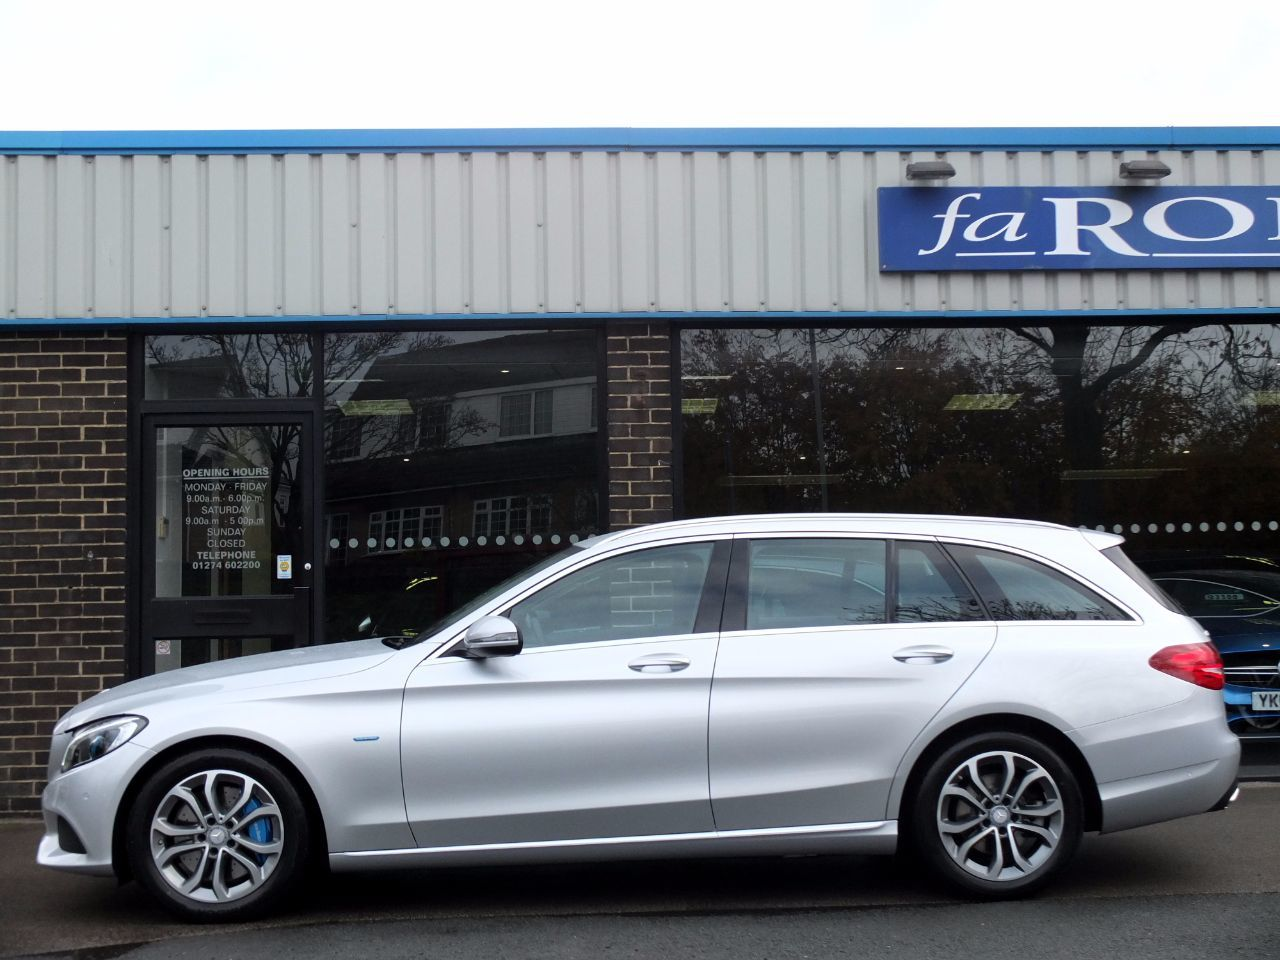 Mercedes-Benz C Class 2.0 C350e Sport PHEV (Electric Plug In Hybrid) Estate Auto Estate Hybrid Iridium Silver Metallic